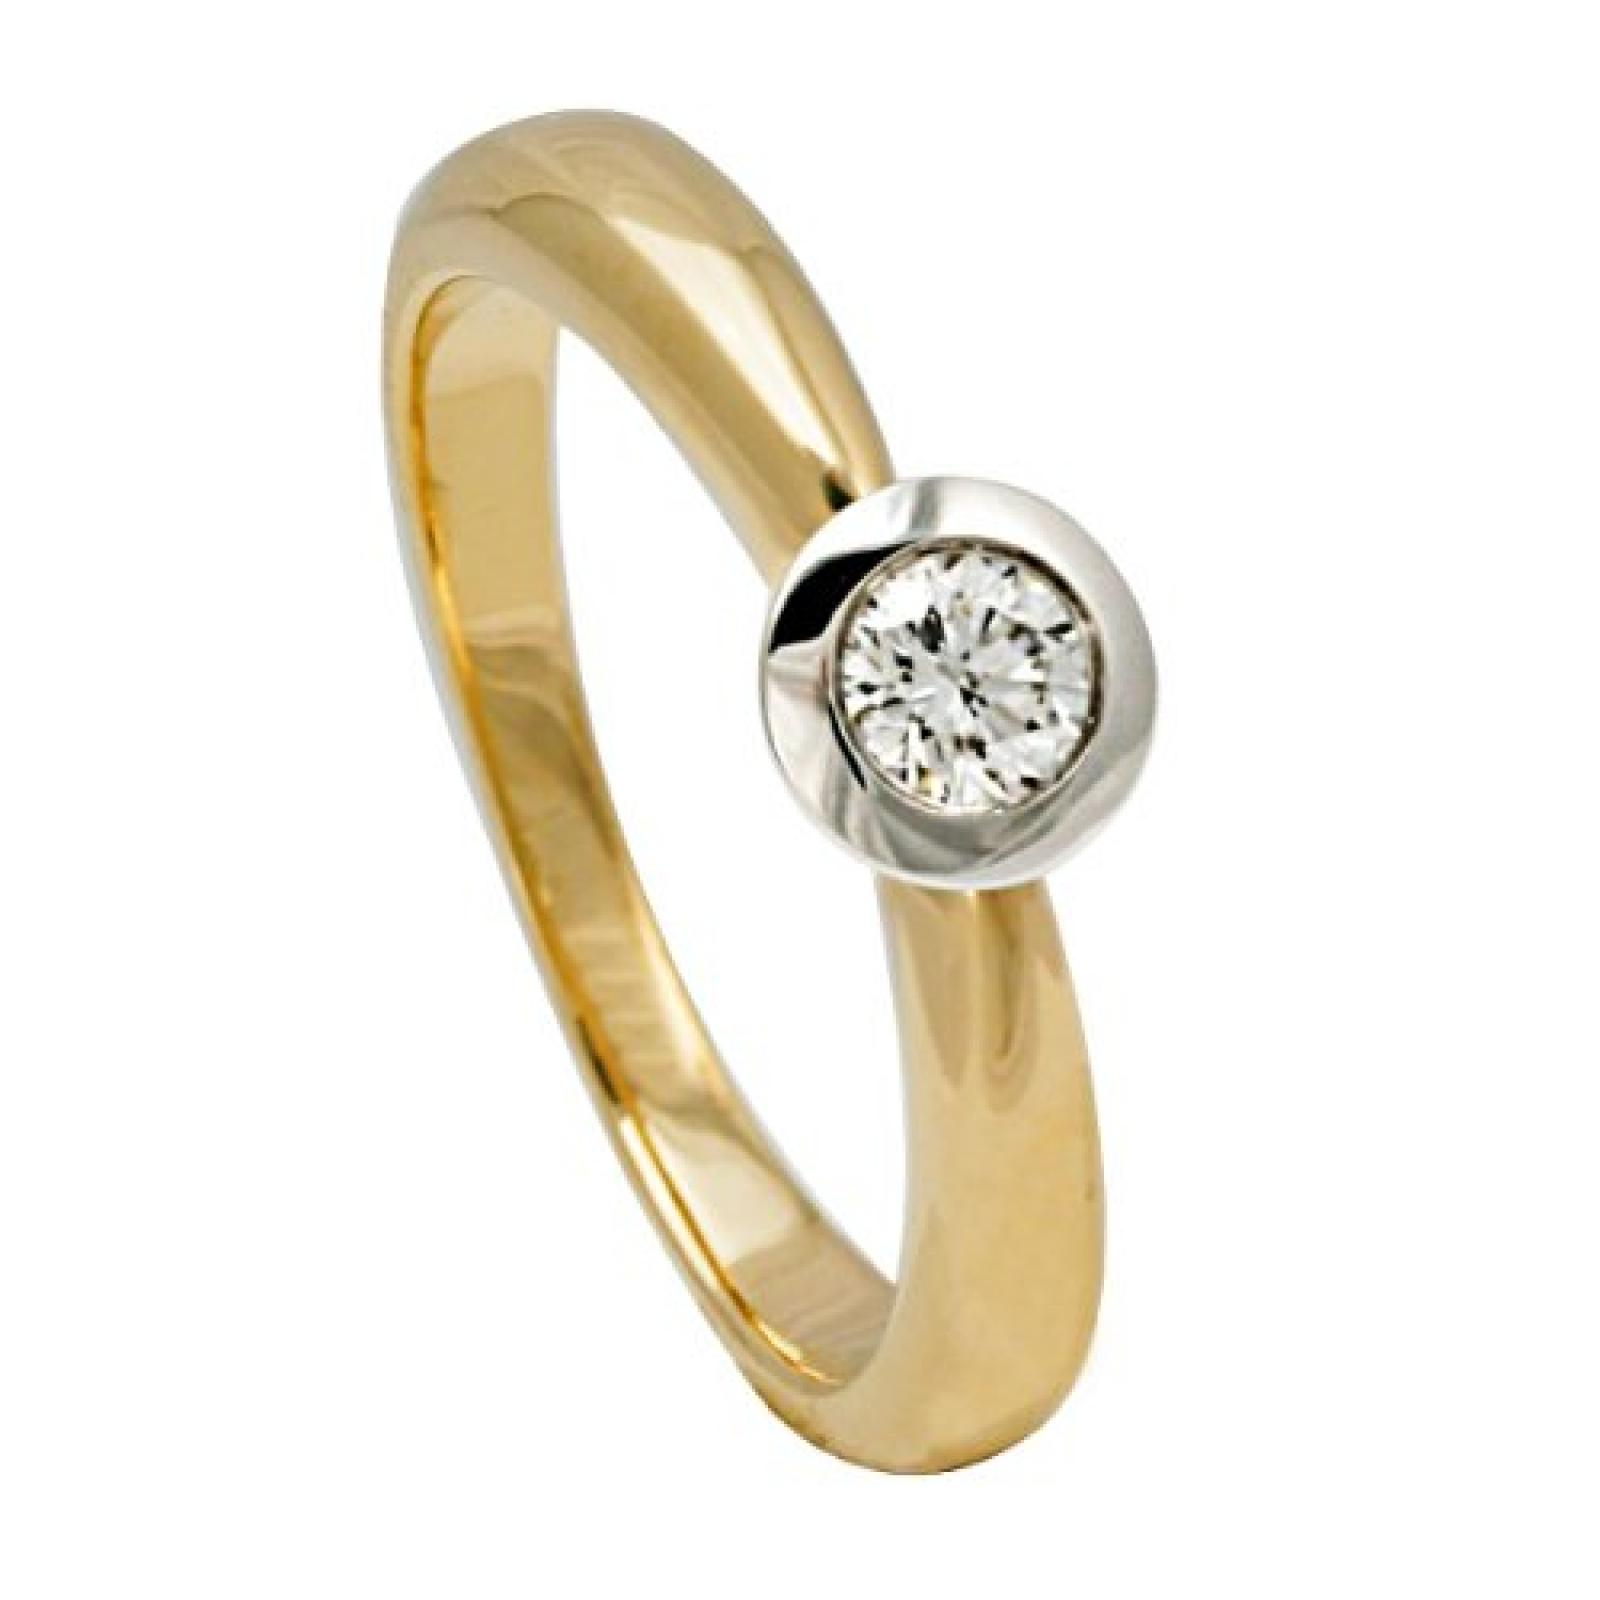 Bella Donna Damen-Ring 585 Bicolor 1 Diamant 0.25 ct. weiß Lupenrein